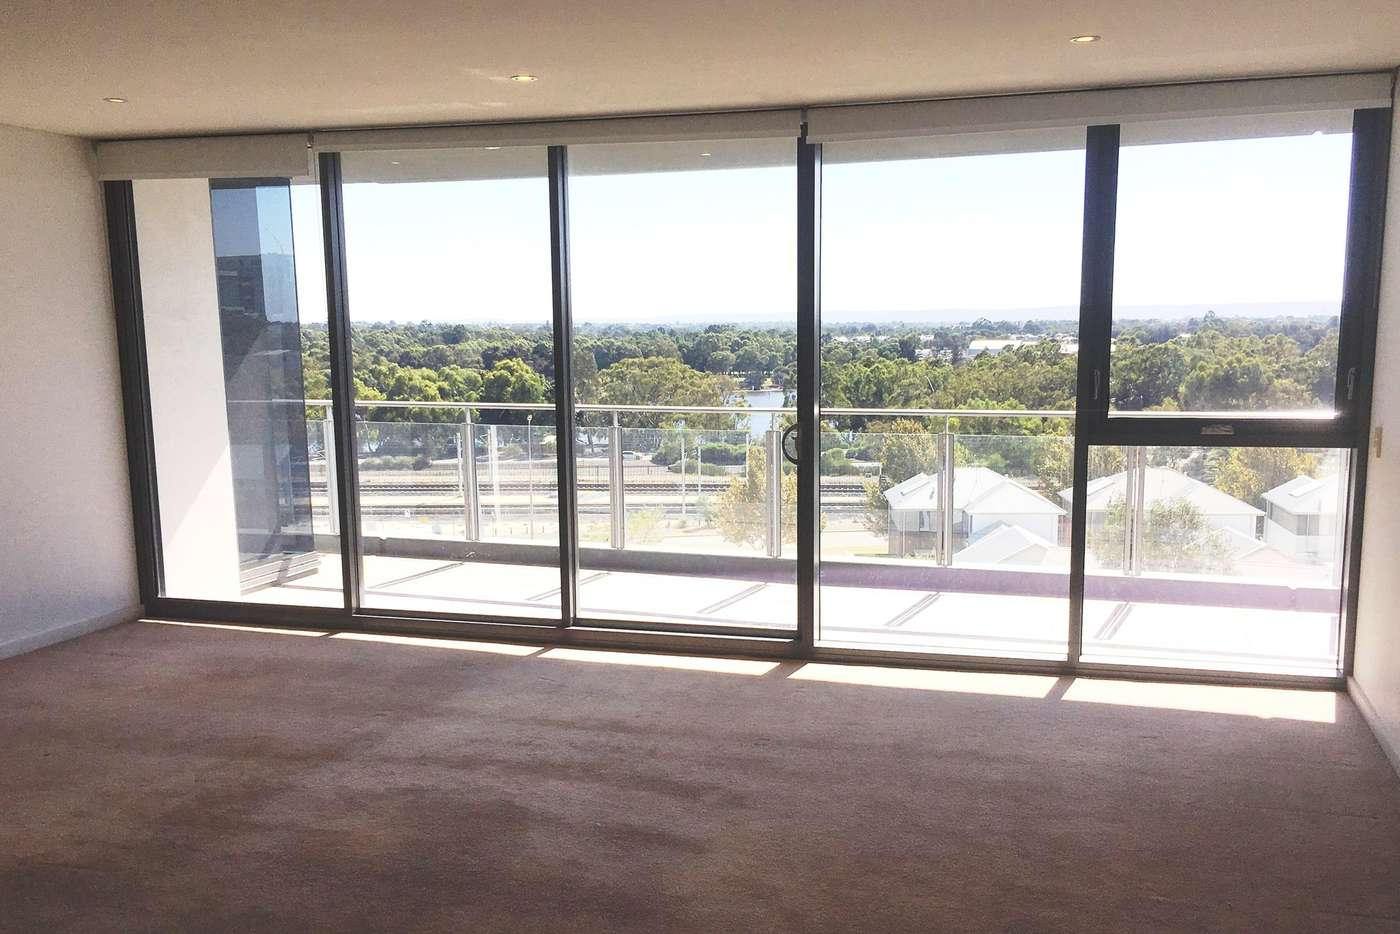 Sixth view of Homely apartment listing, 607/96 Bow River Crescent, Burswood WA 6100